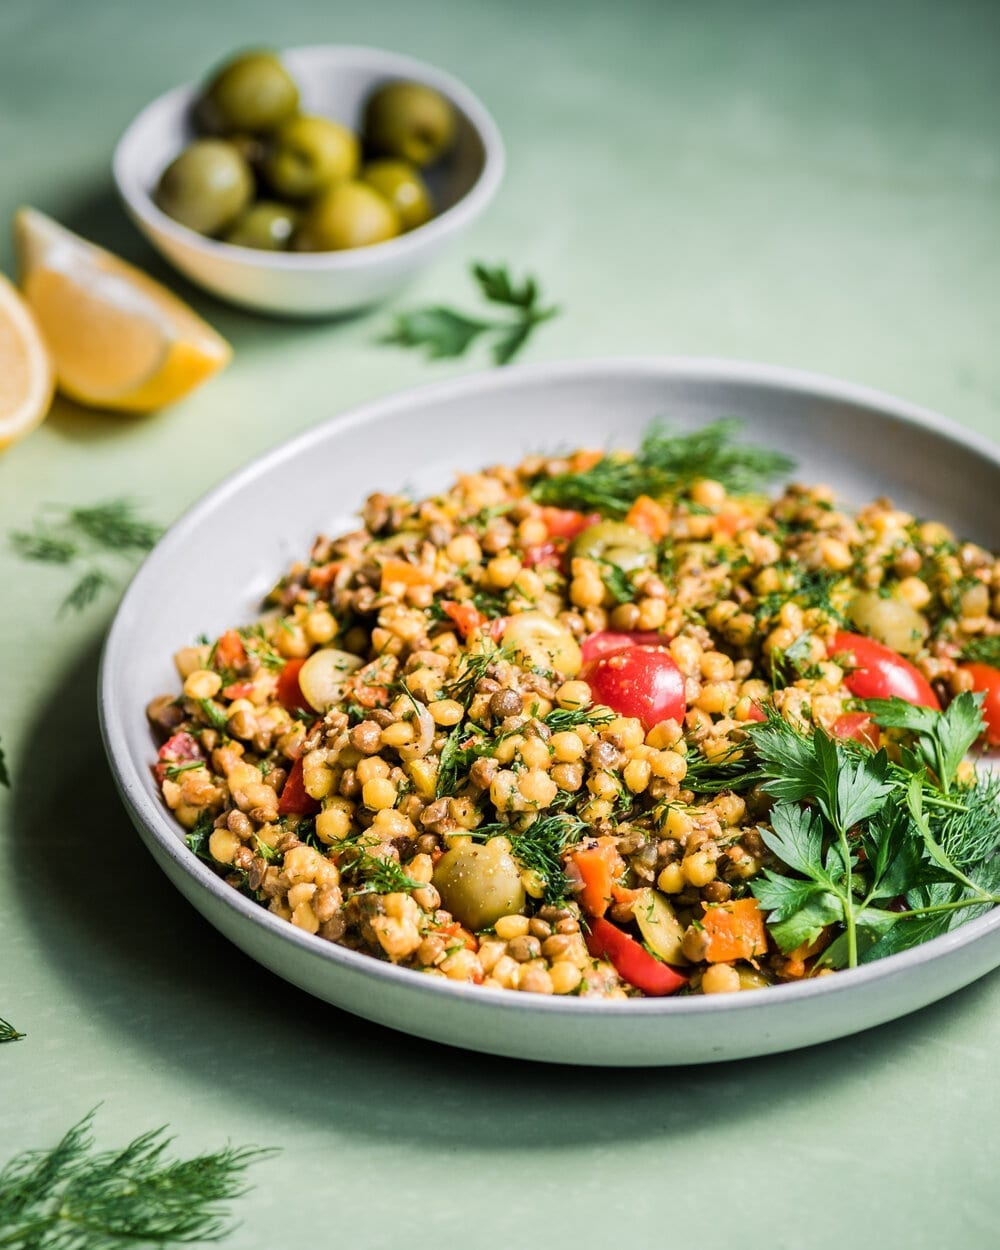 couscous and lentils (1 of 2).jpg